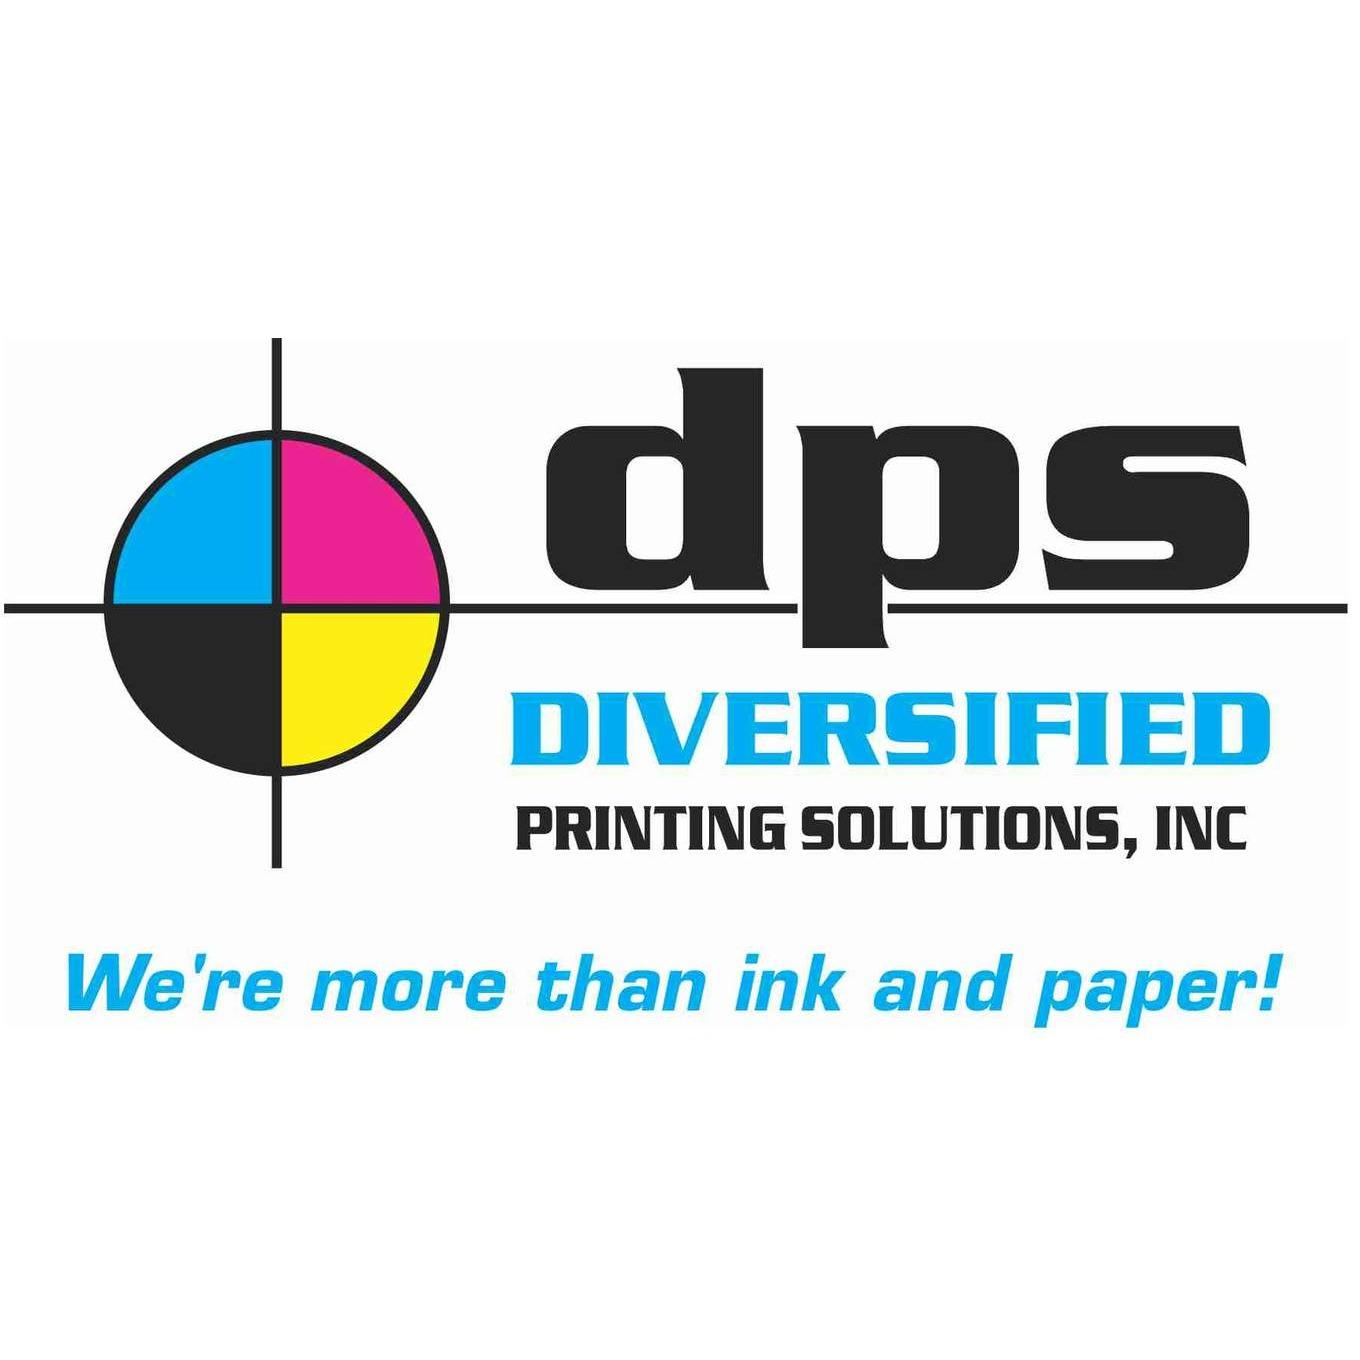 Diversified Printing Solutions, Inc.